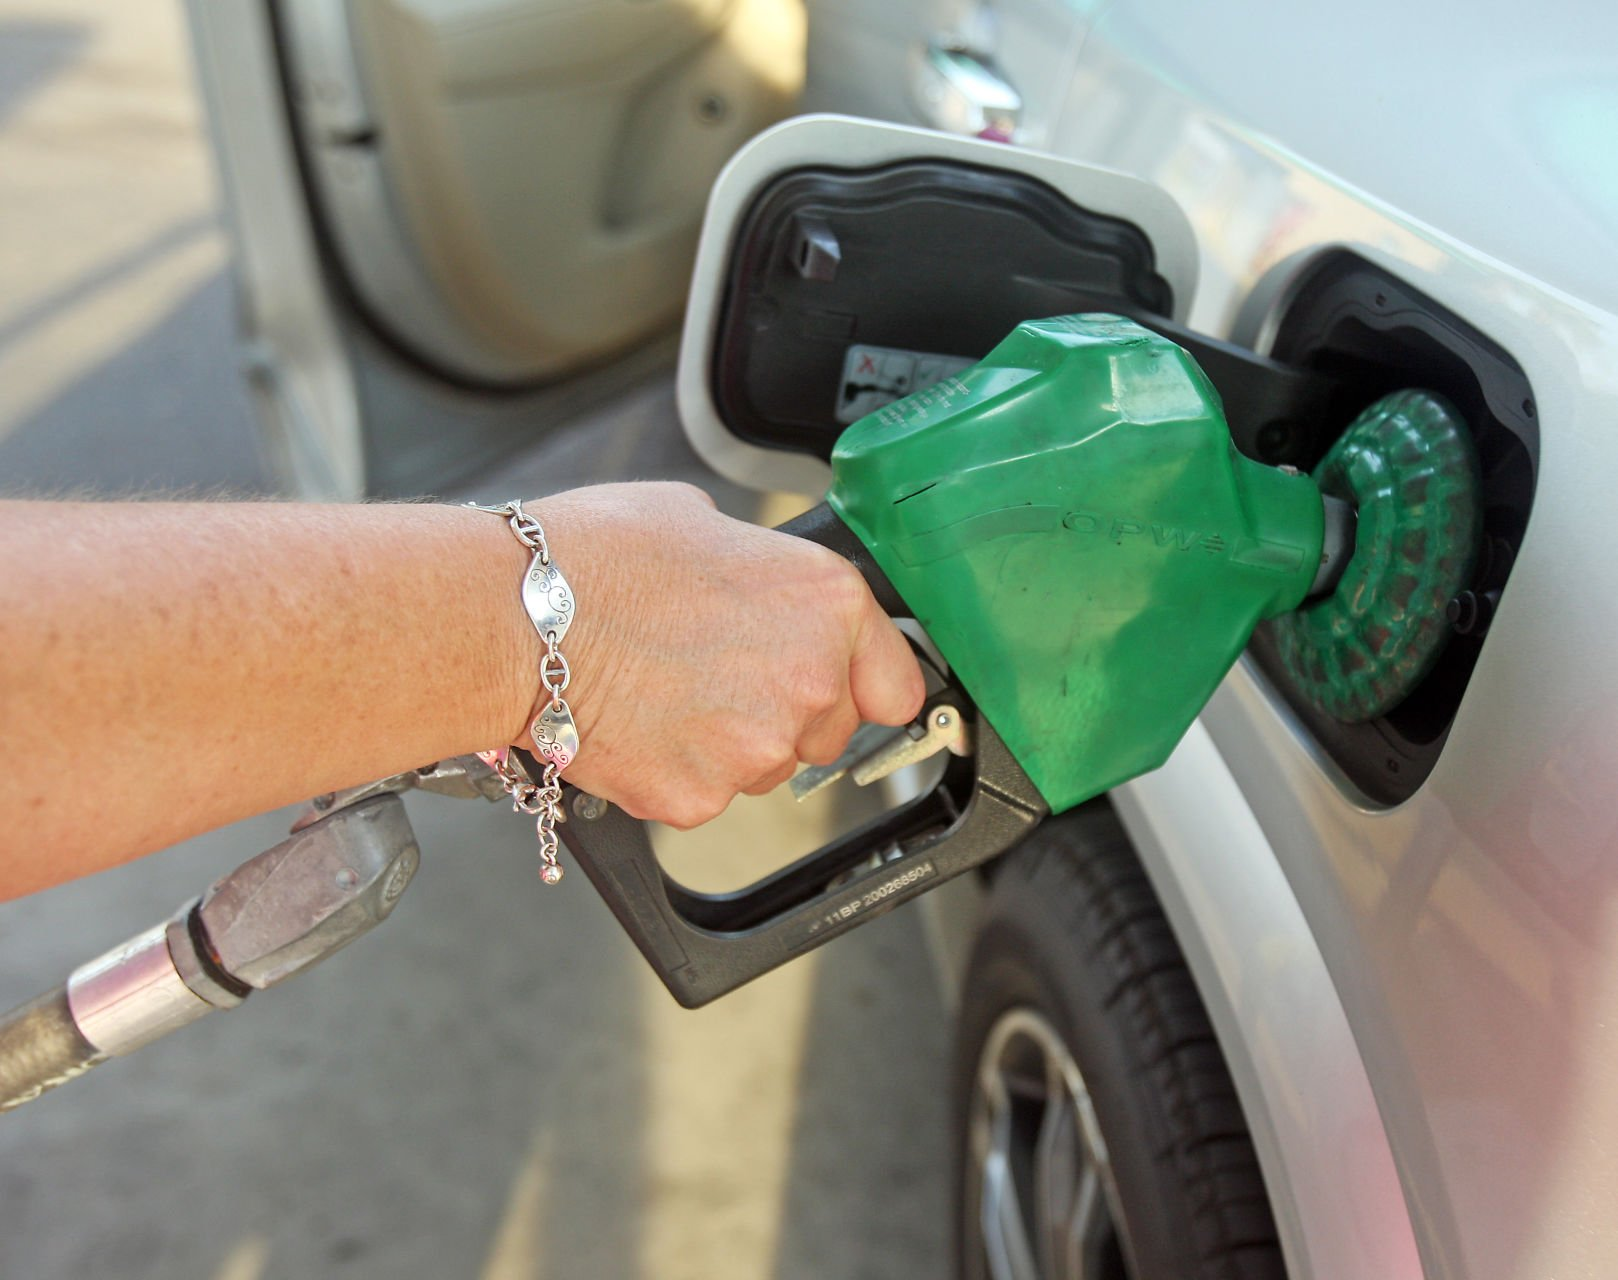 Fuel prices decline in Nevada, rise nationally